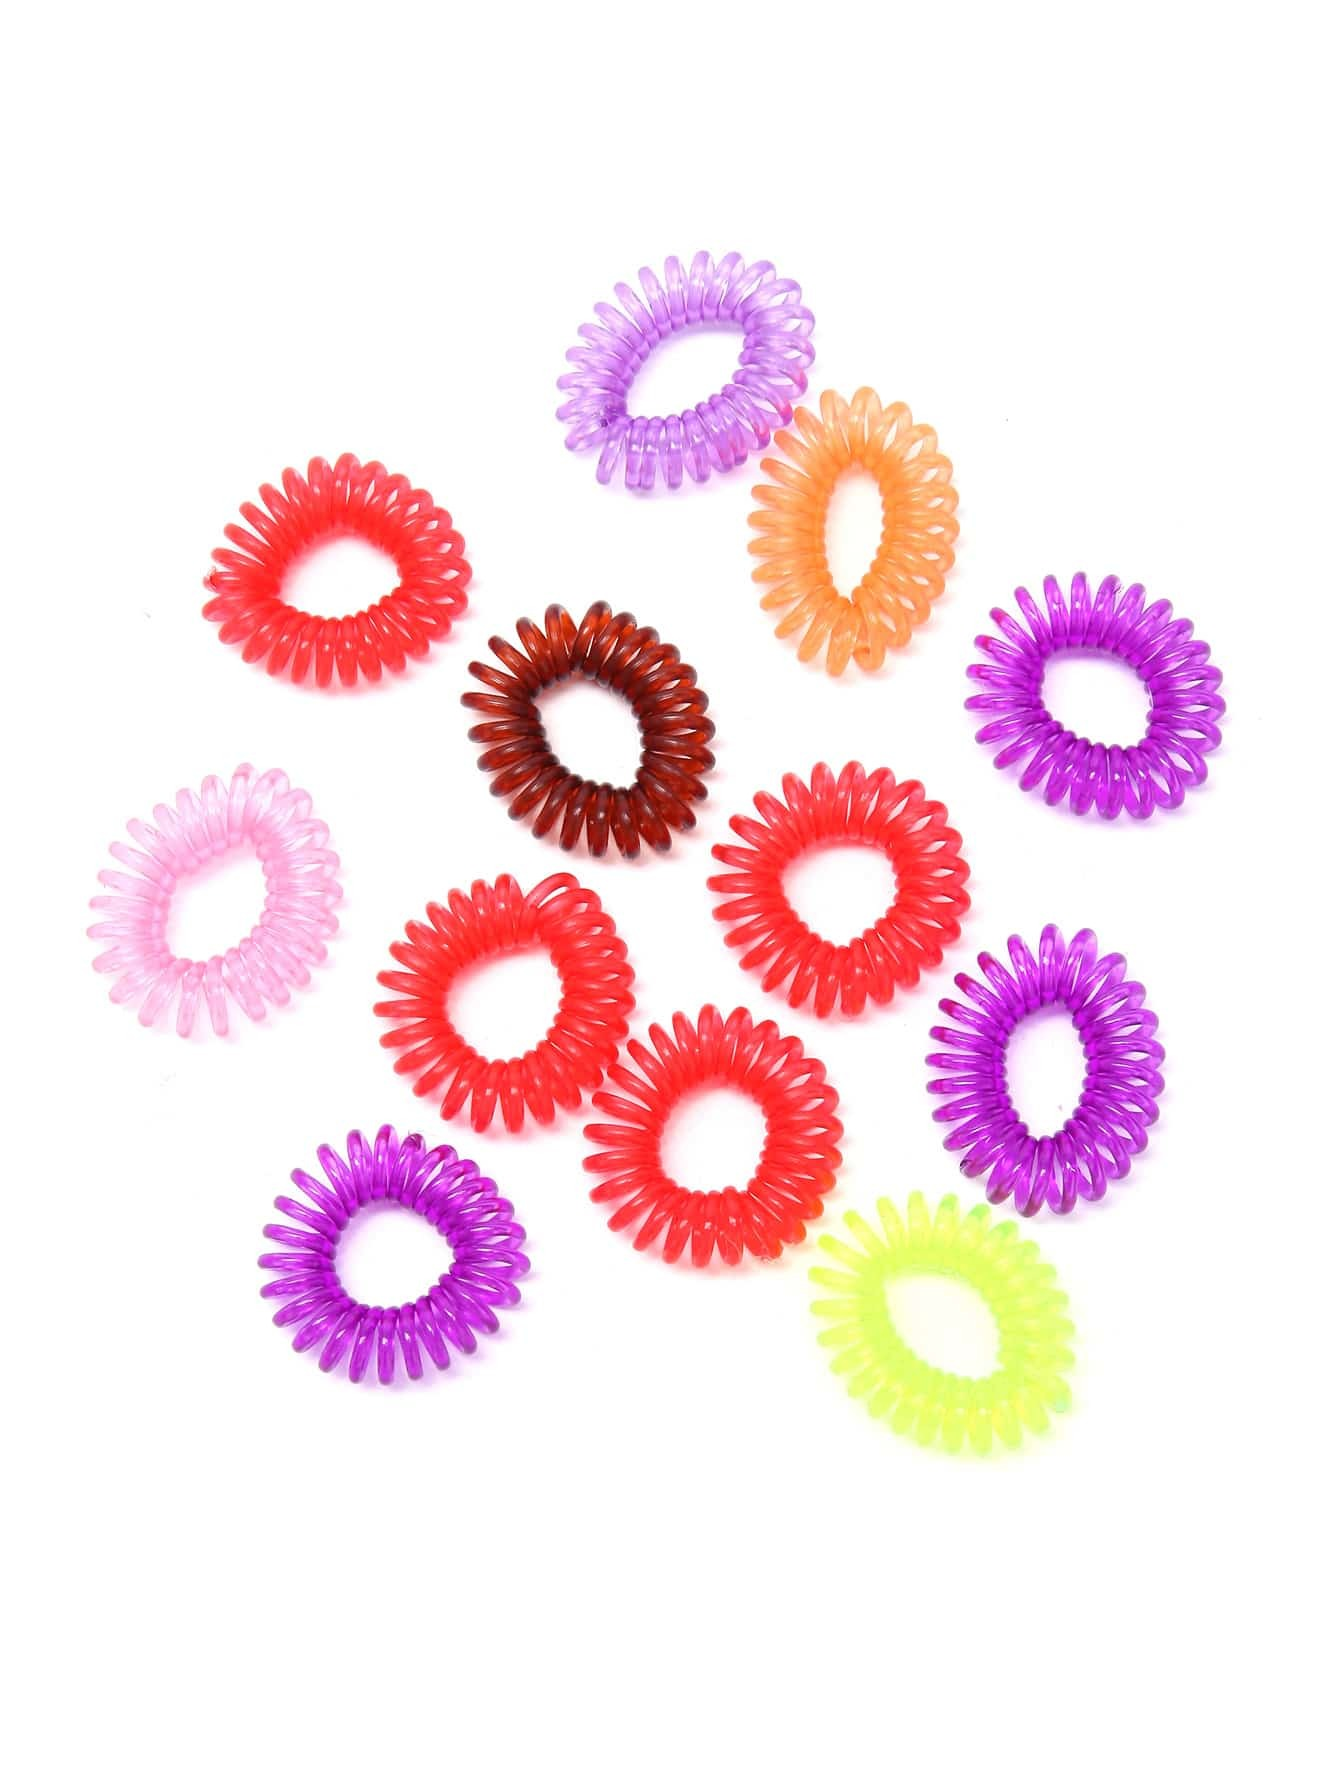 Random Color Telephone Cord Hair Tie Set hairHA161121301